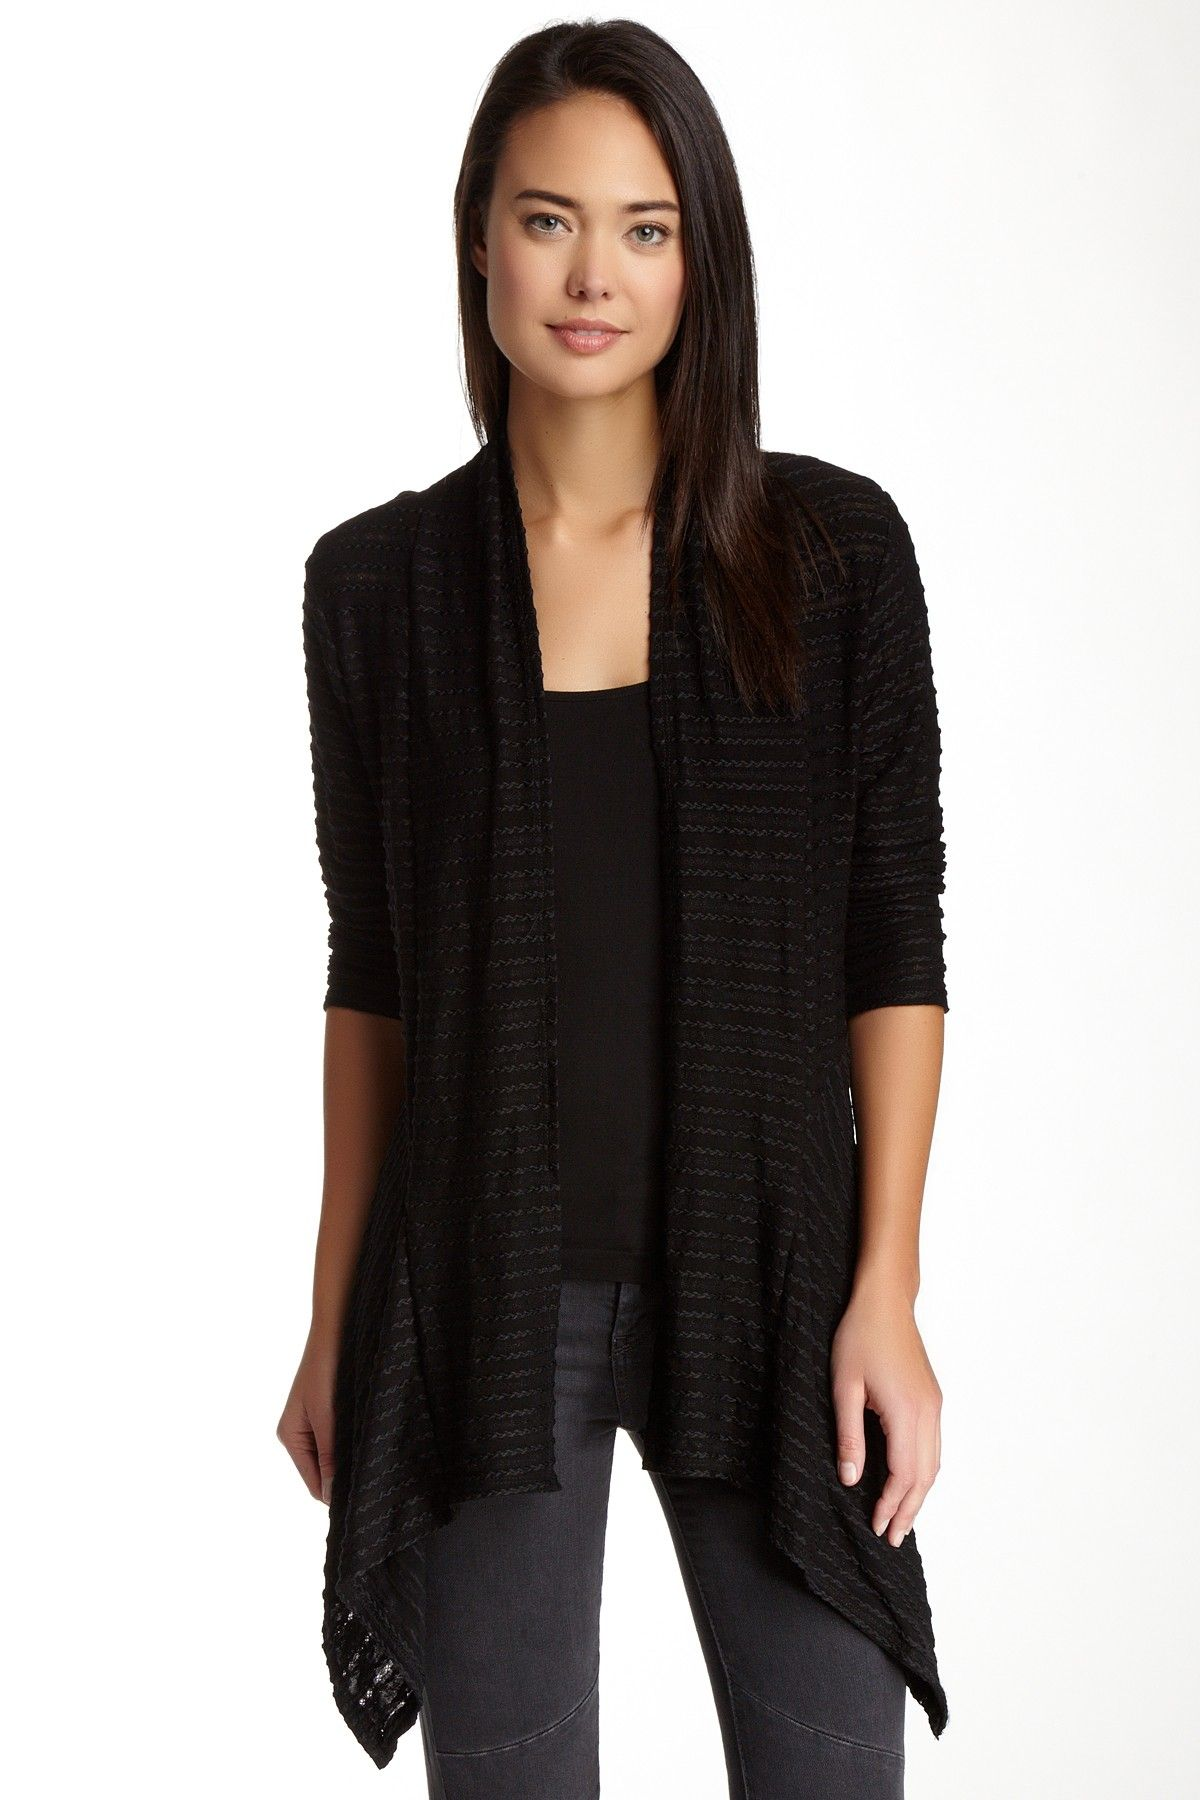 Simply Irresistible Open Cardigan by Simply Irresistible on @HauteLook